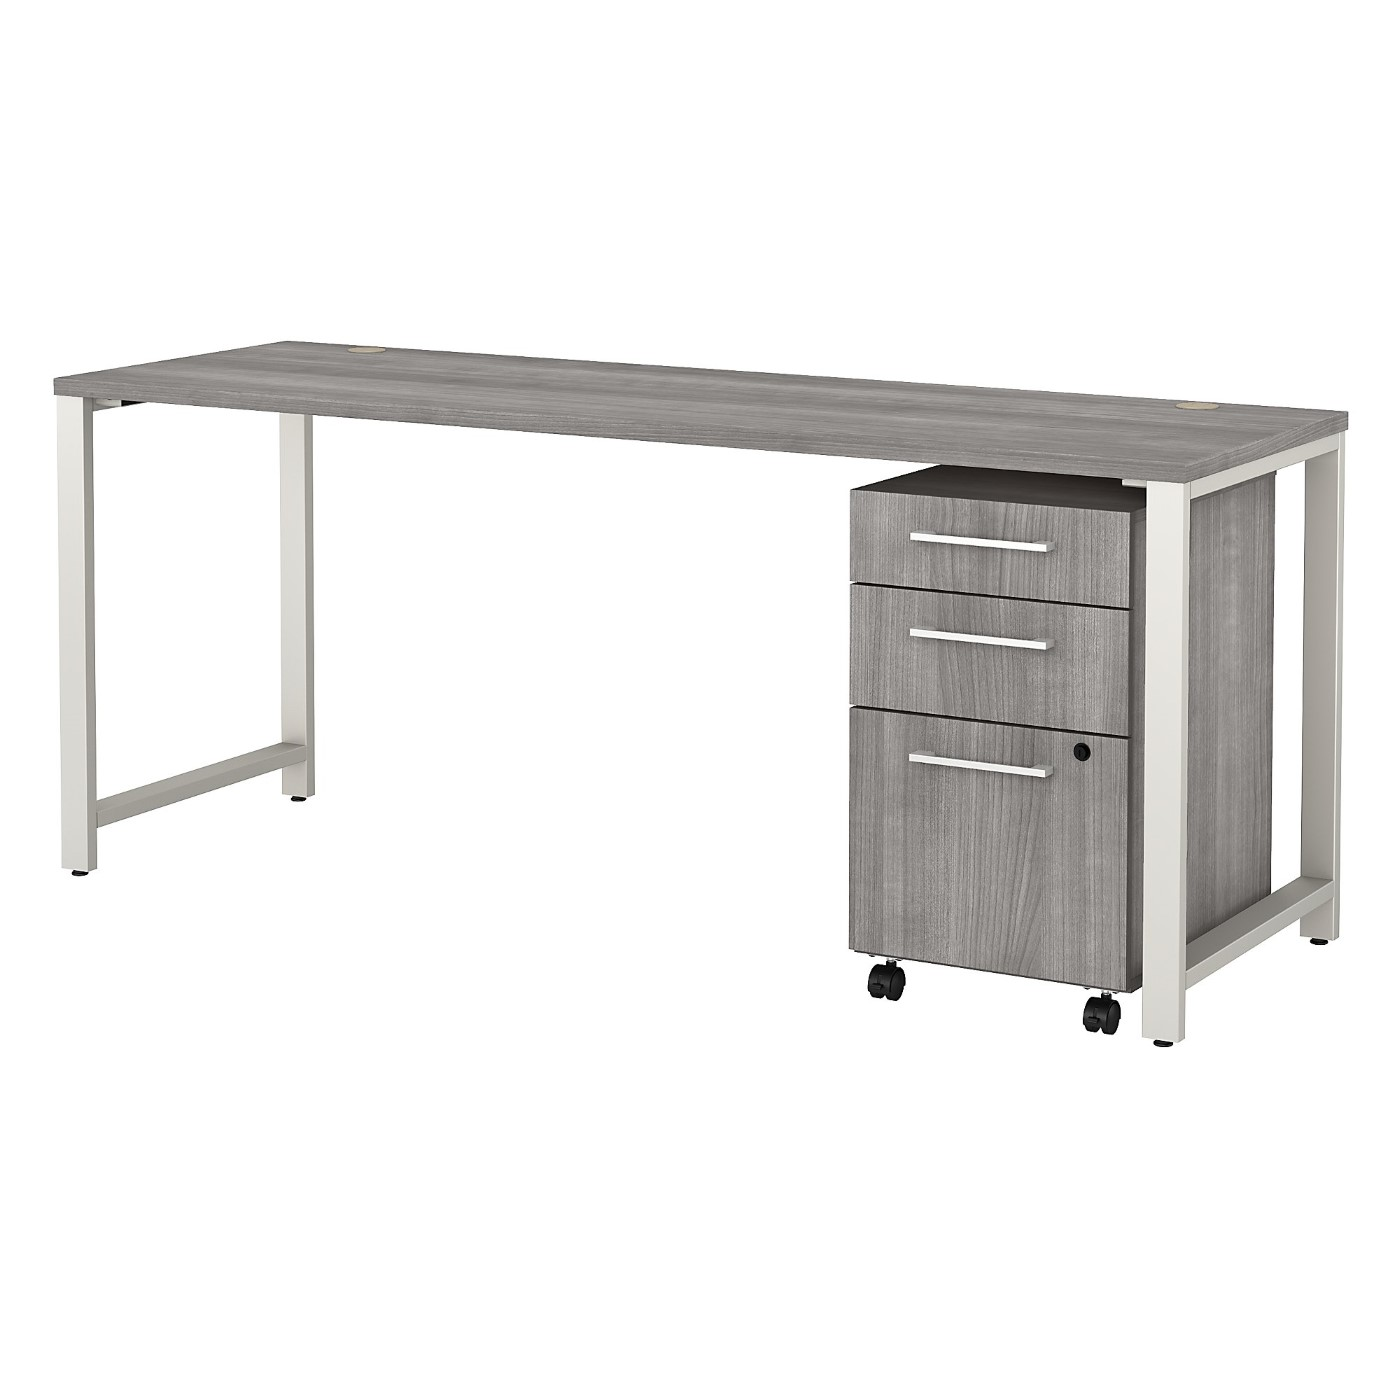 BUSH BUSINESS FURNITURE 400 SERIES 72W X 24D TABLE DESK WITH 3 DRAWER MOBILE FILE CABINET. FREE SHIPPING